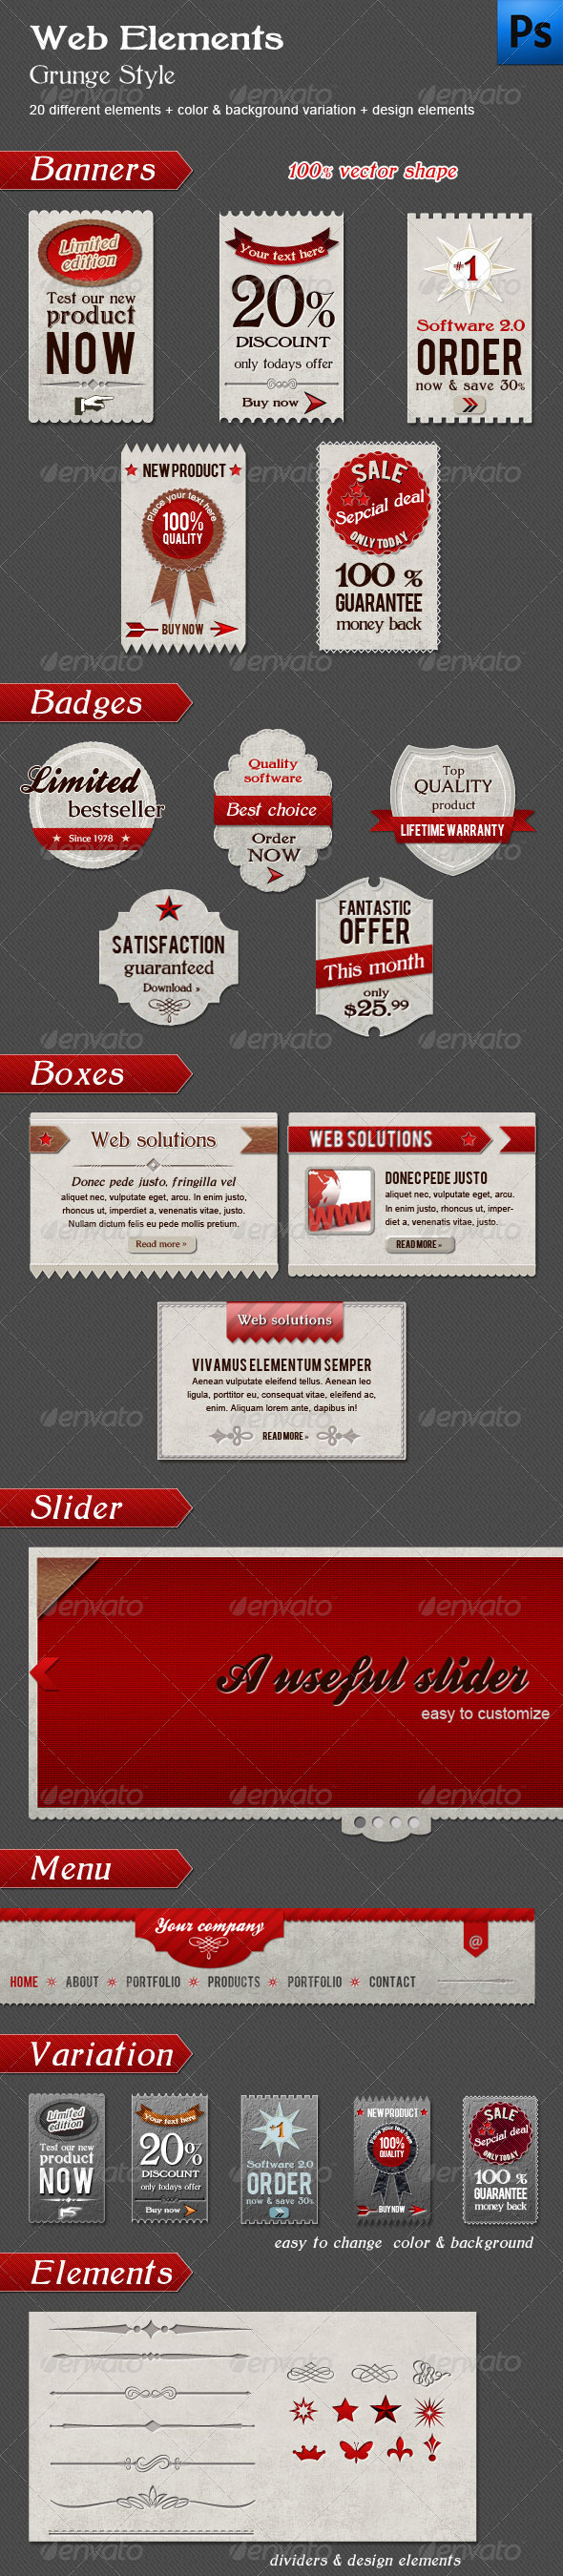 GraphicRiver Web Elements Grunge Style 626998